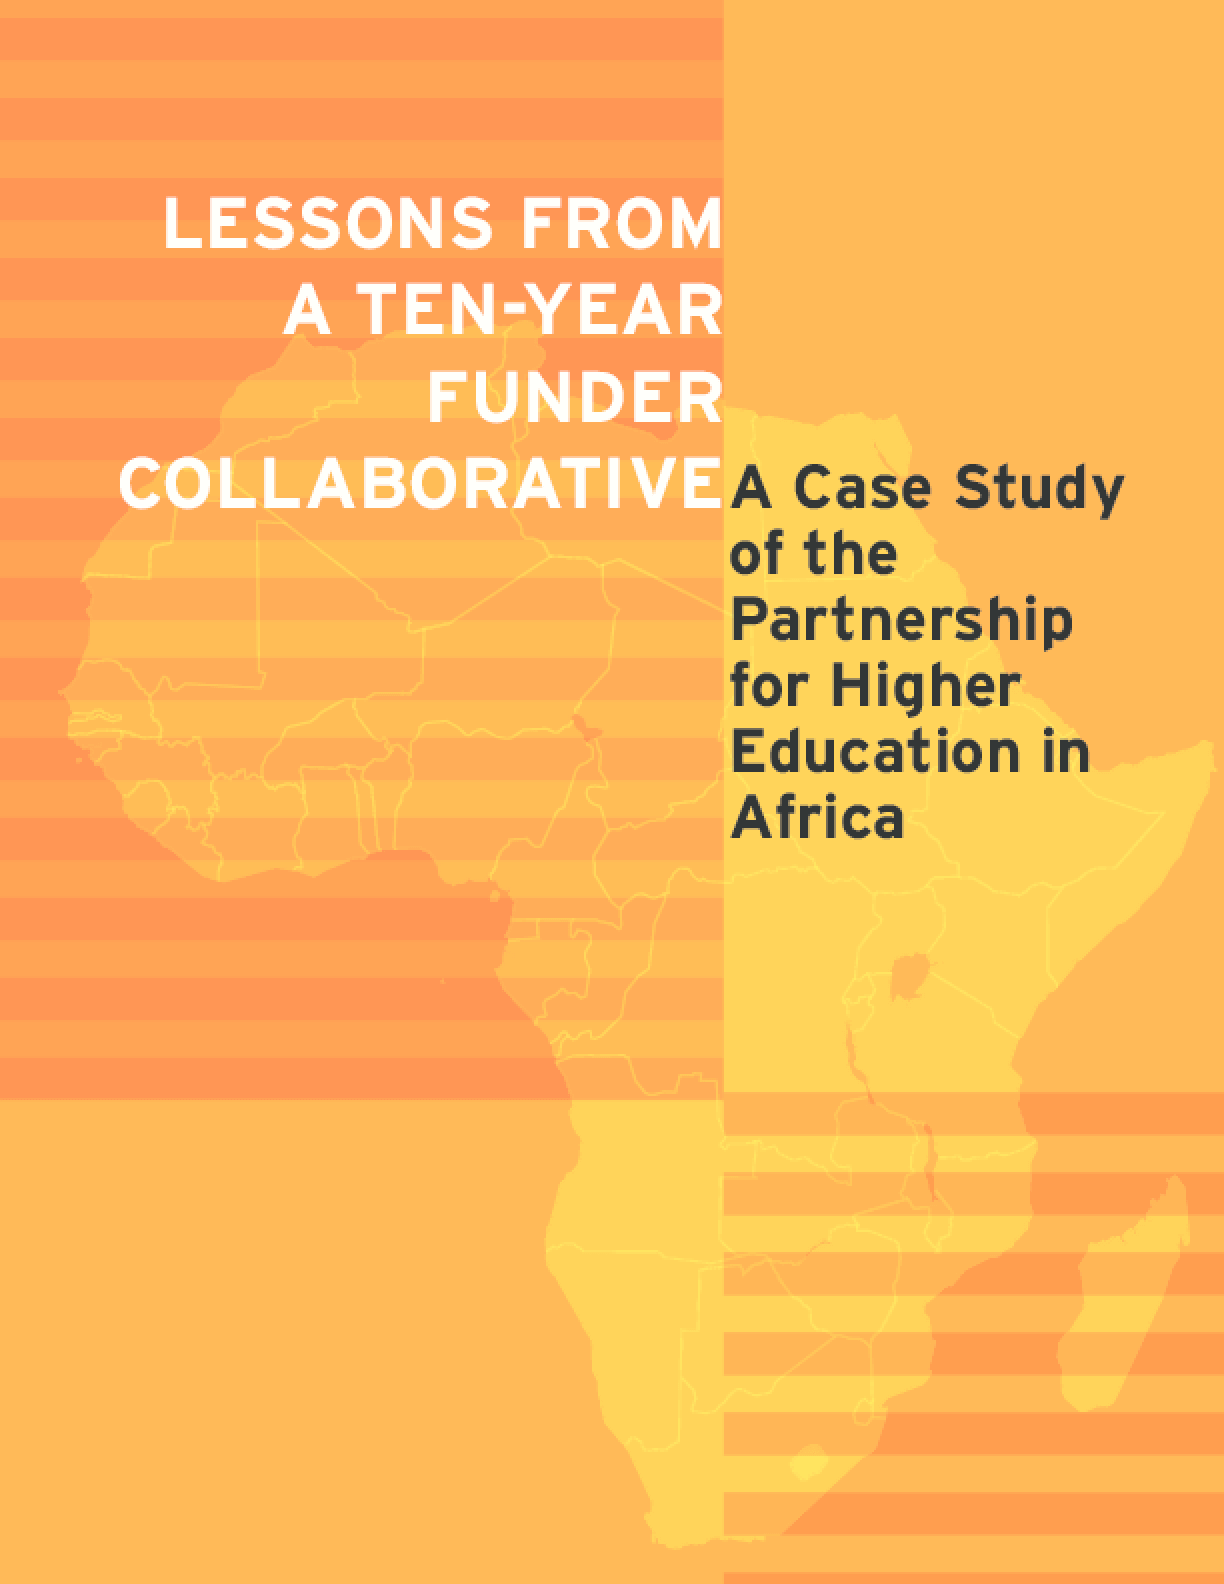 Lessons From a Ten-Year Funder Collaborative: A Case Study of the Partnership for Higher Education in Africa